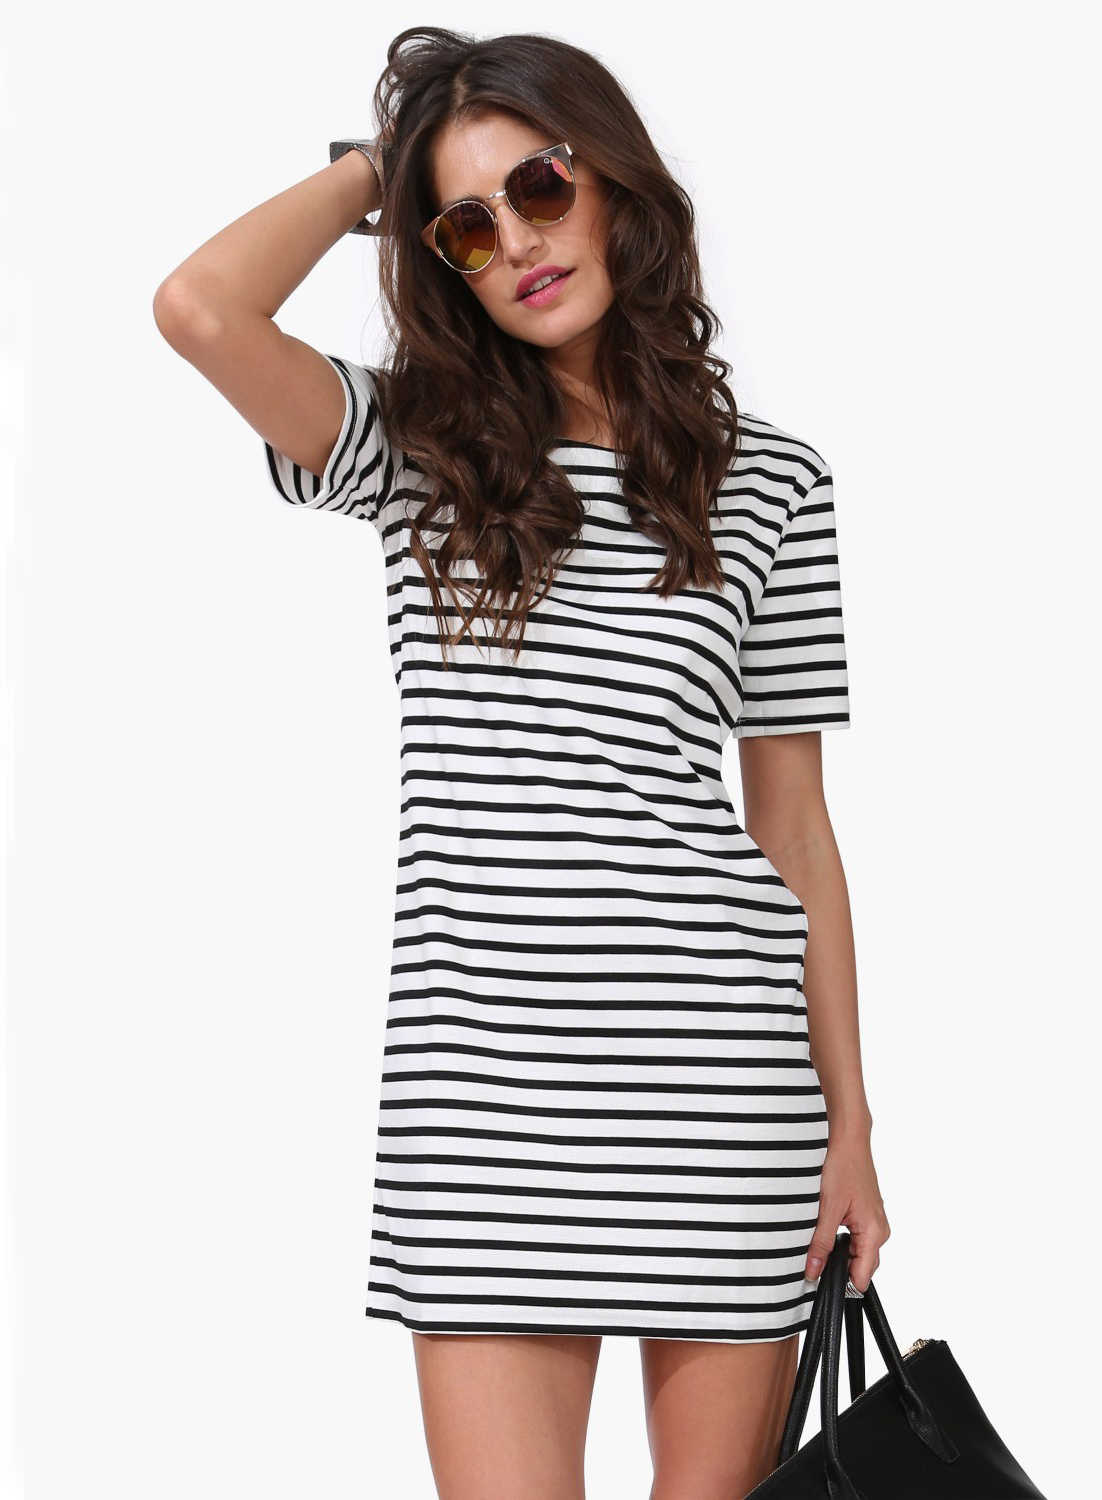 67c4f596288 Black And White Striped Shirt Dress Short - Gomes Weine AG